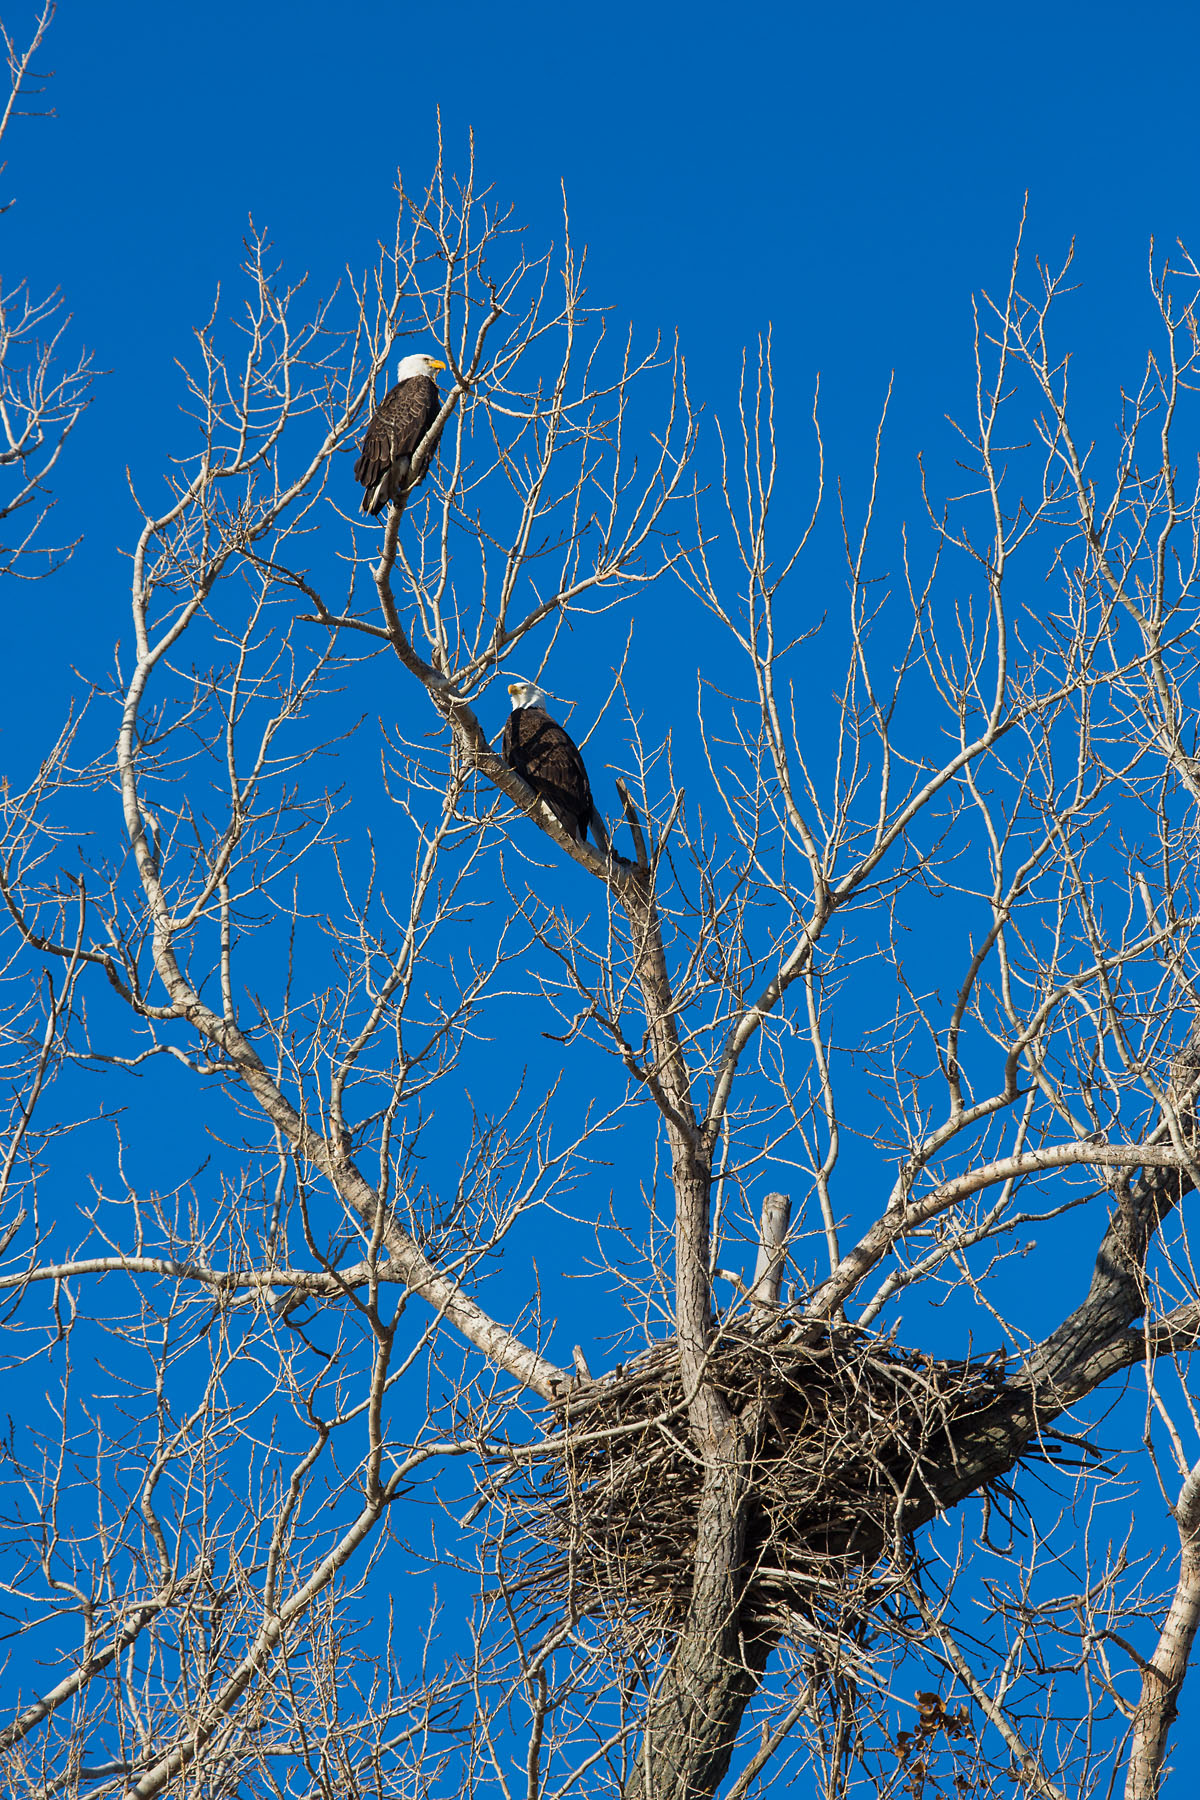 Bald Eagles near the nest, Loess Bluffs NWR, December 2019.  Click for next photo.